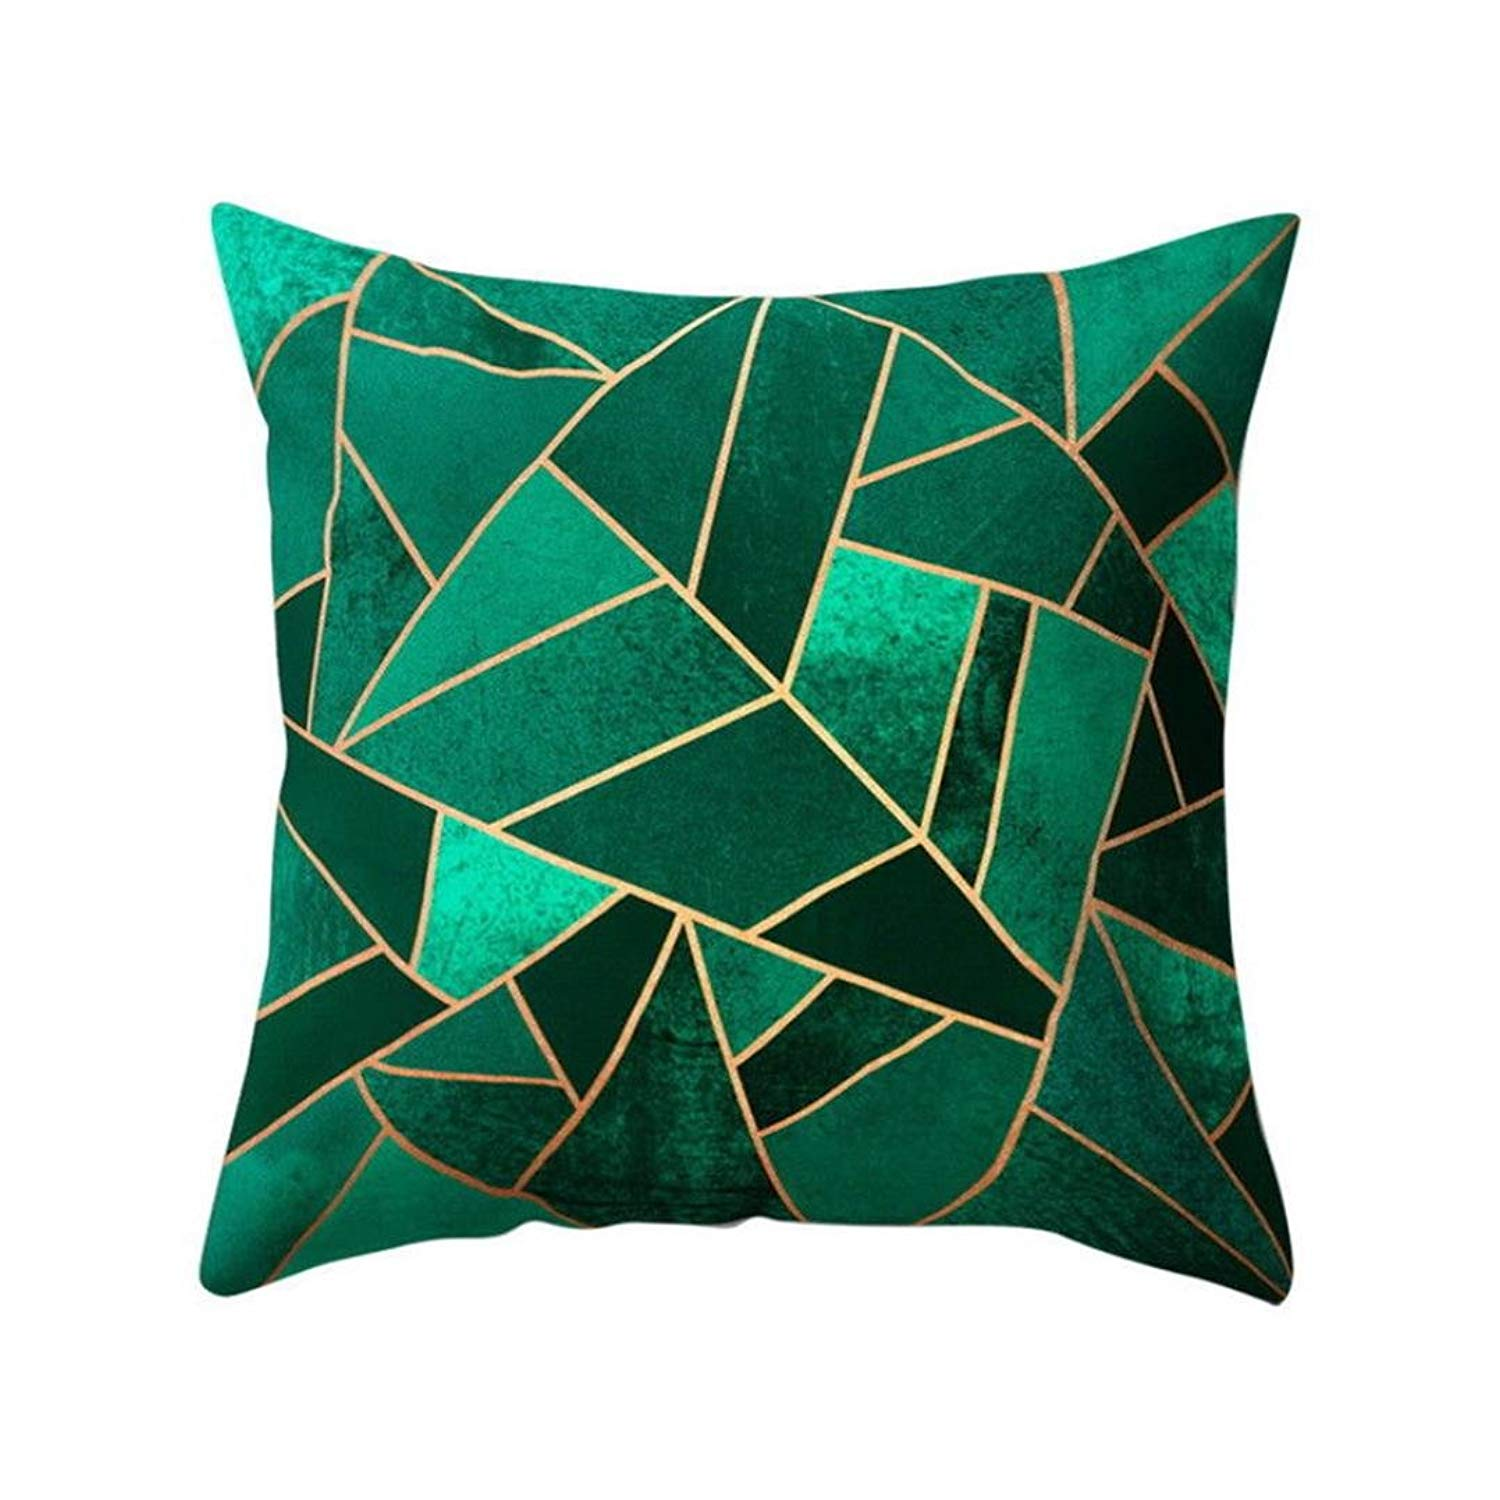 MaxFox Geometric Design Throw Pillow Cover 18 x 18 Inch 45 x 45 Cm Pillow Cover